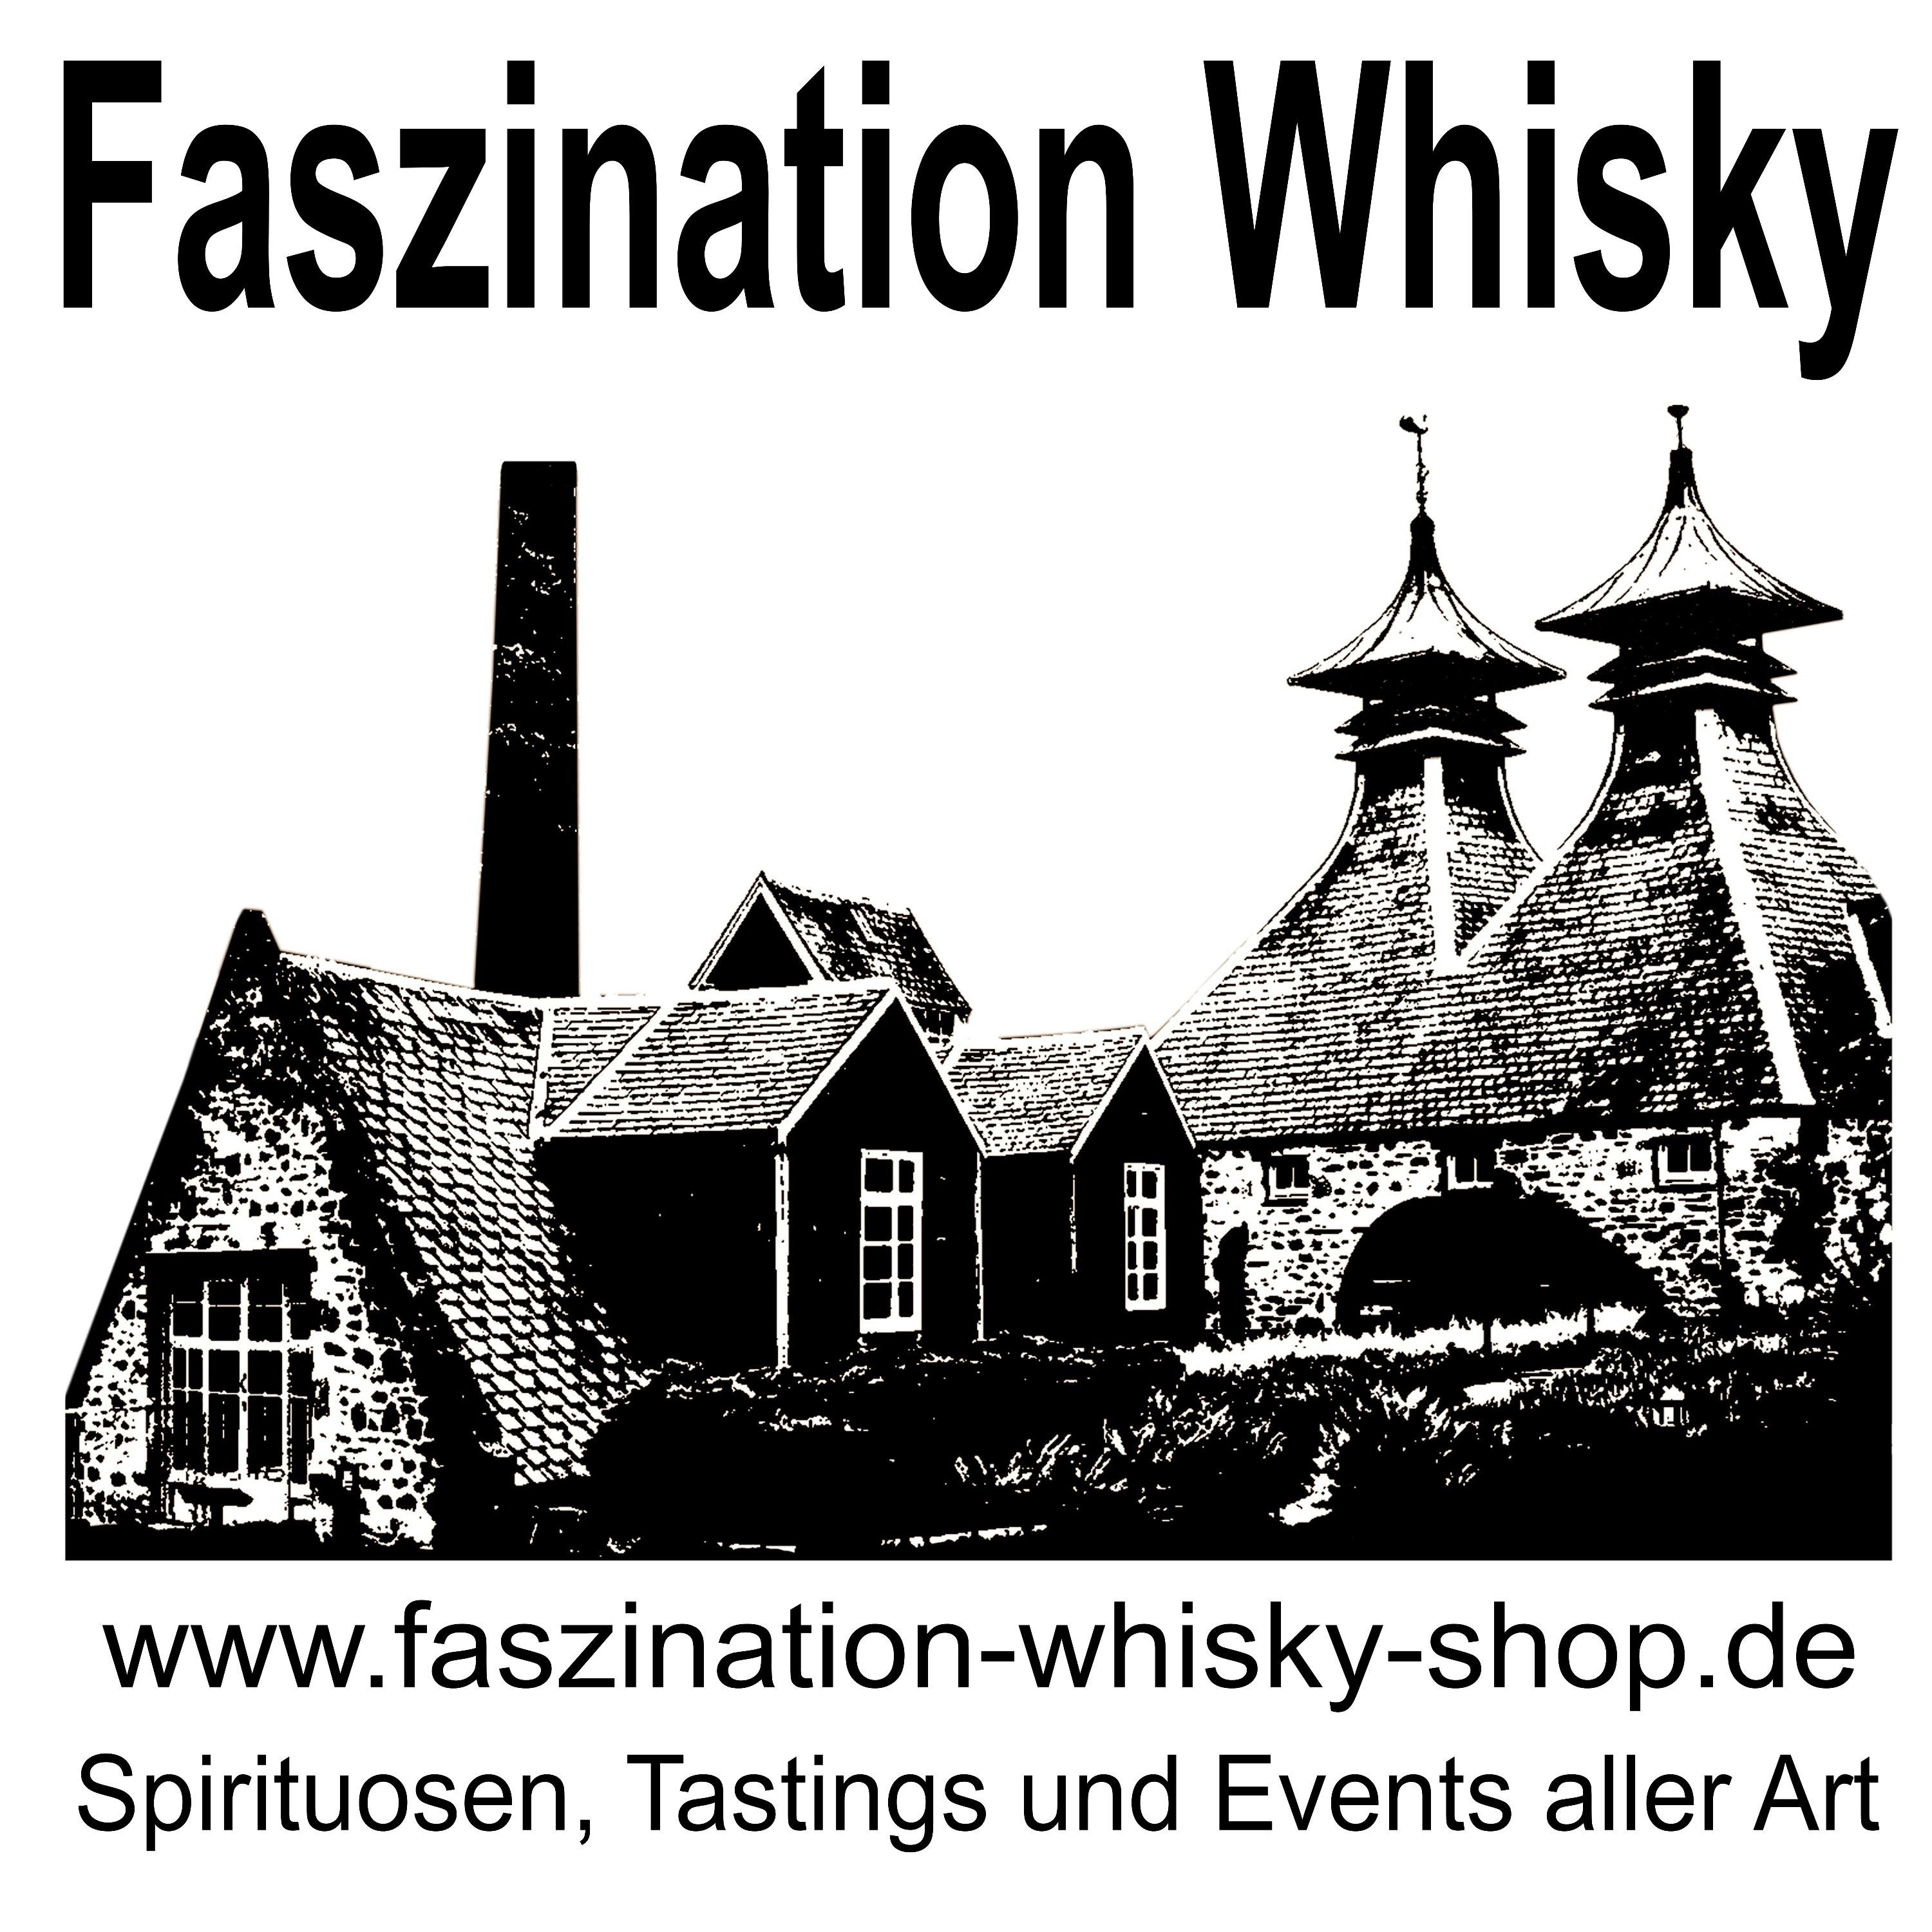 Faszination-Whisky-Shop